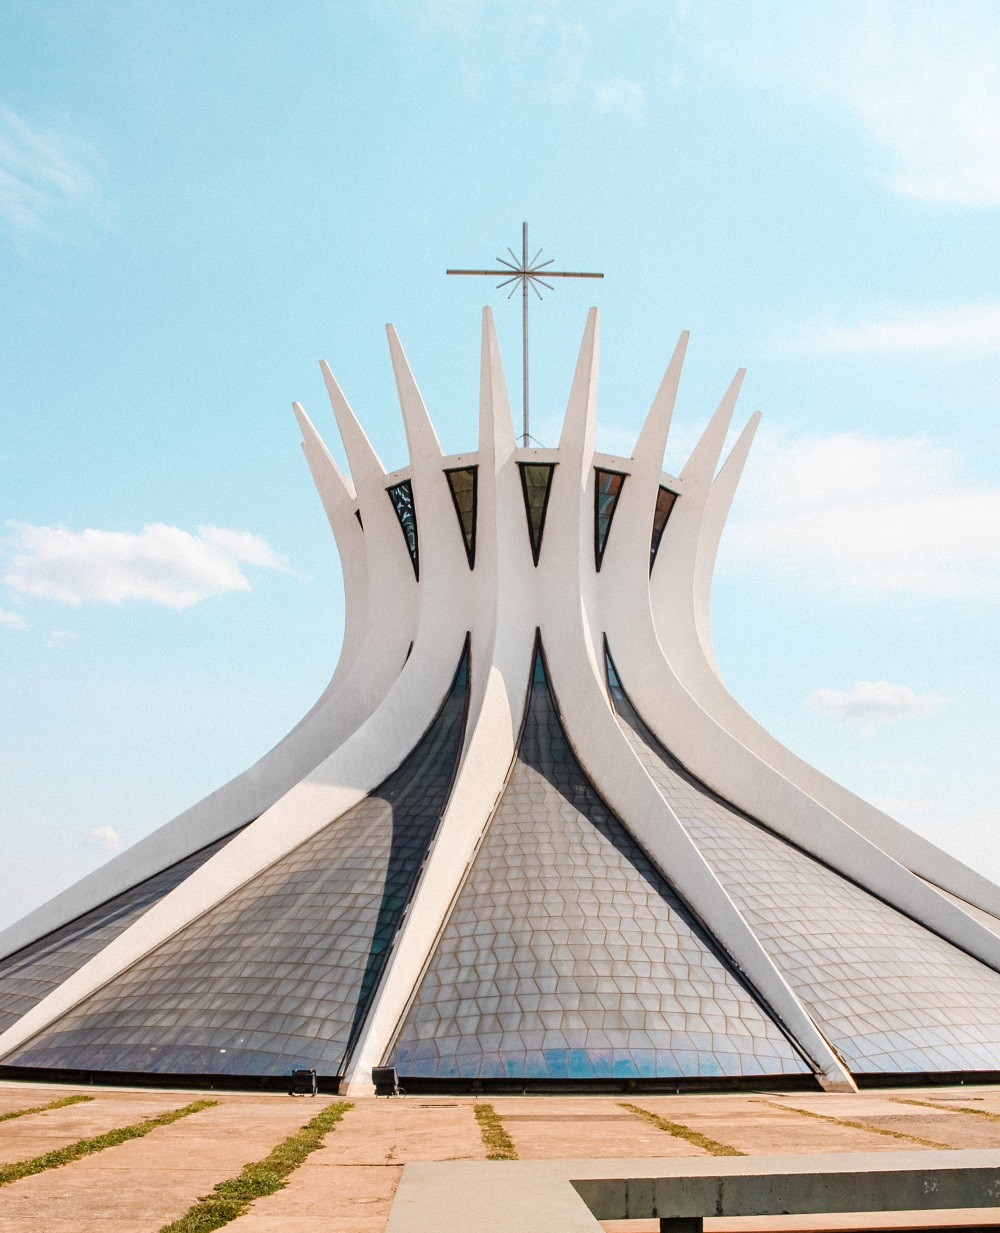 Cathedral of Brasilia, Brasilia architecture